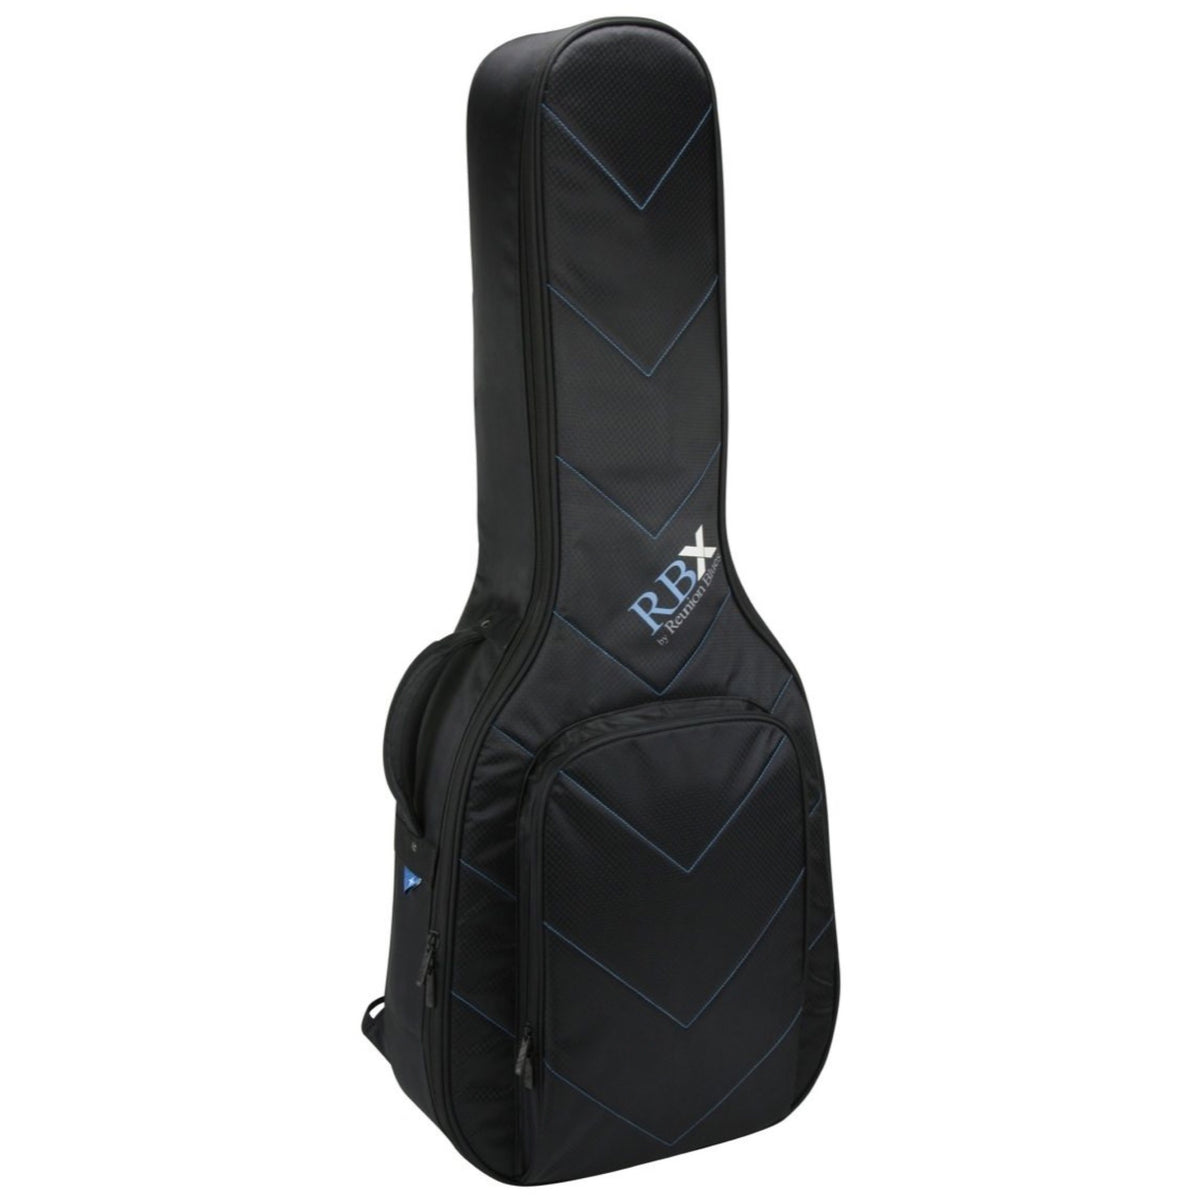 Reunion Blues RBXA2 Acoustic Guitar Bag